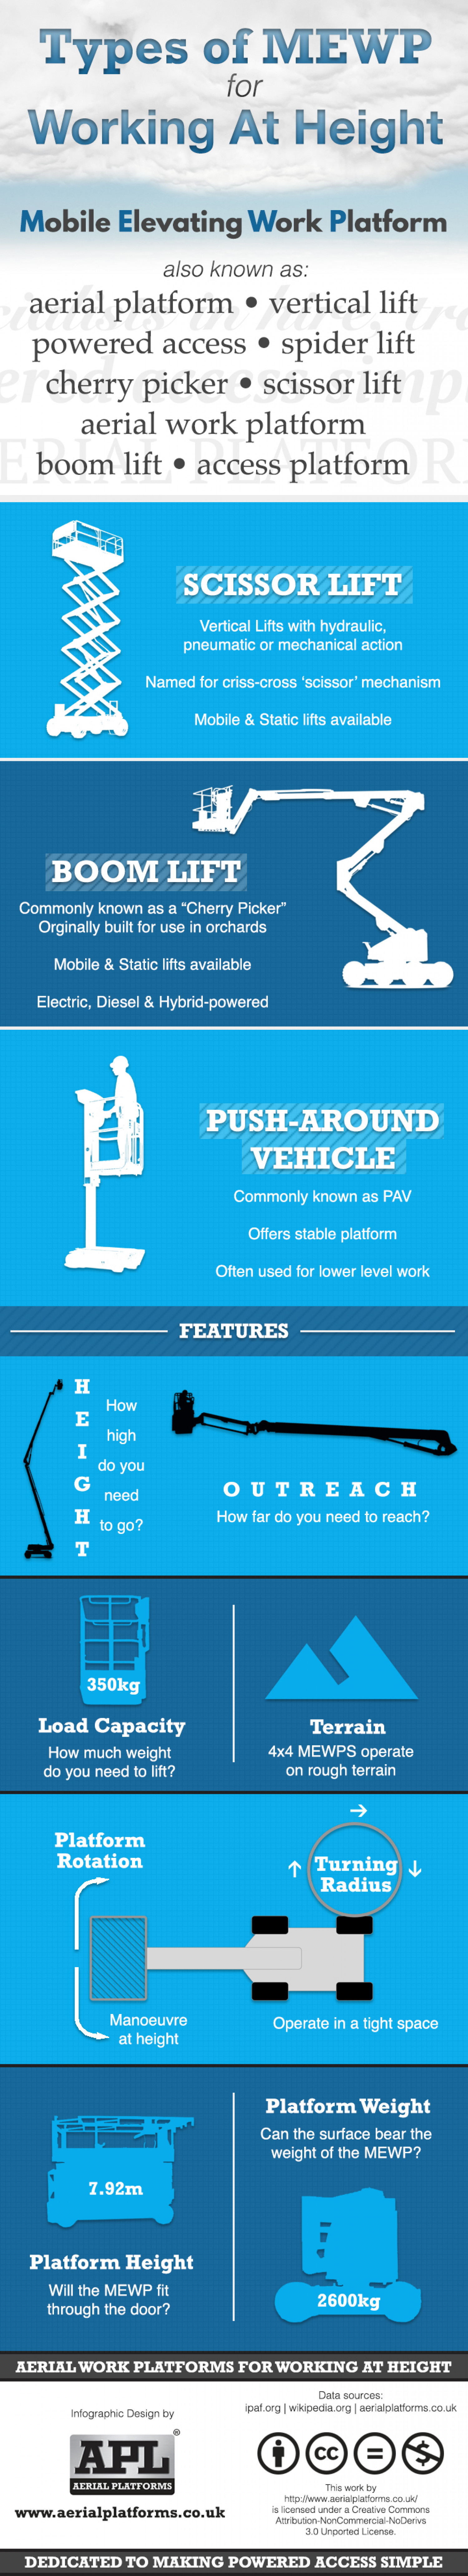 Types of MEWP for Working at Height Infographic